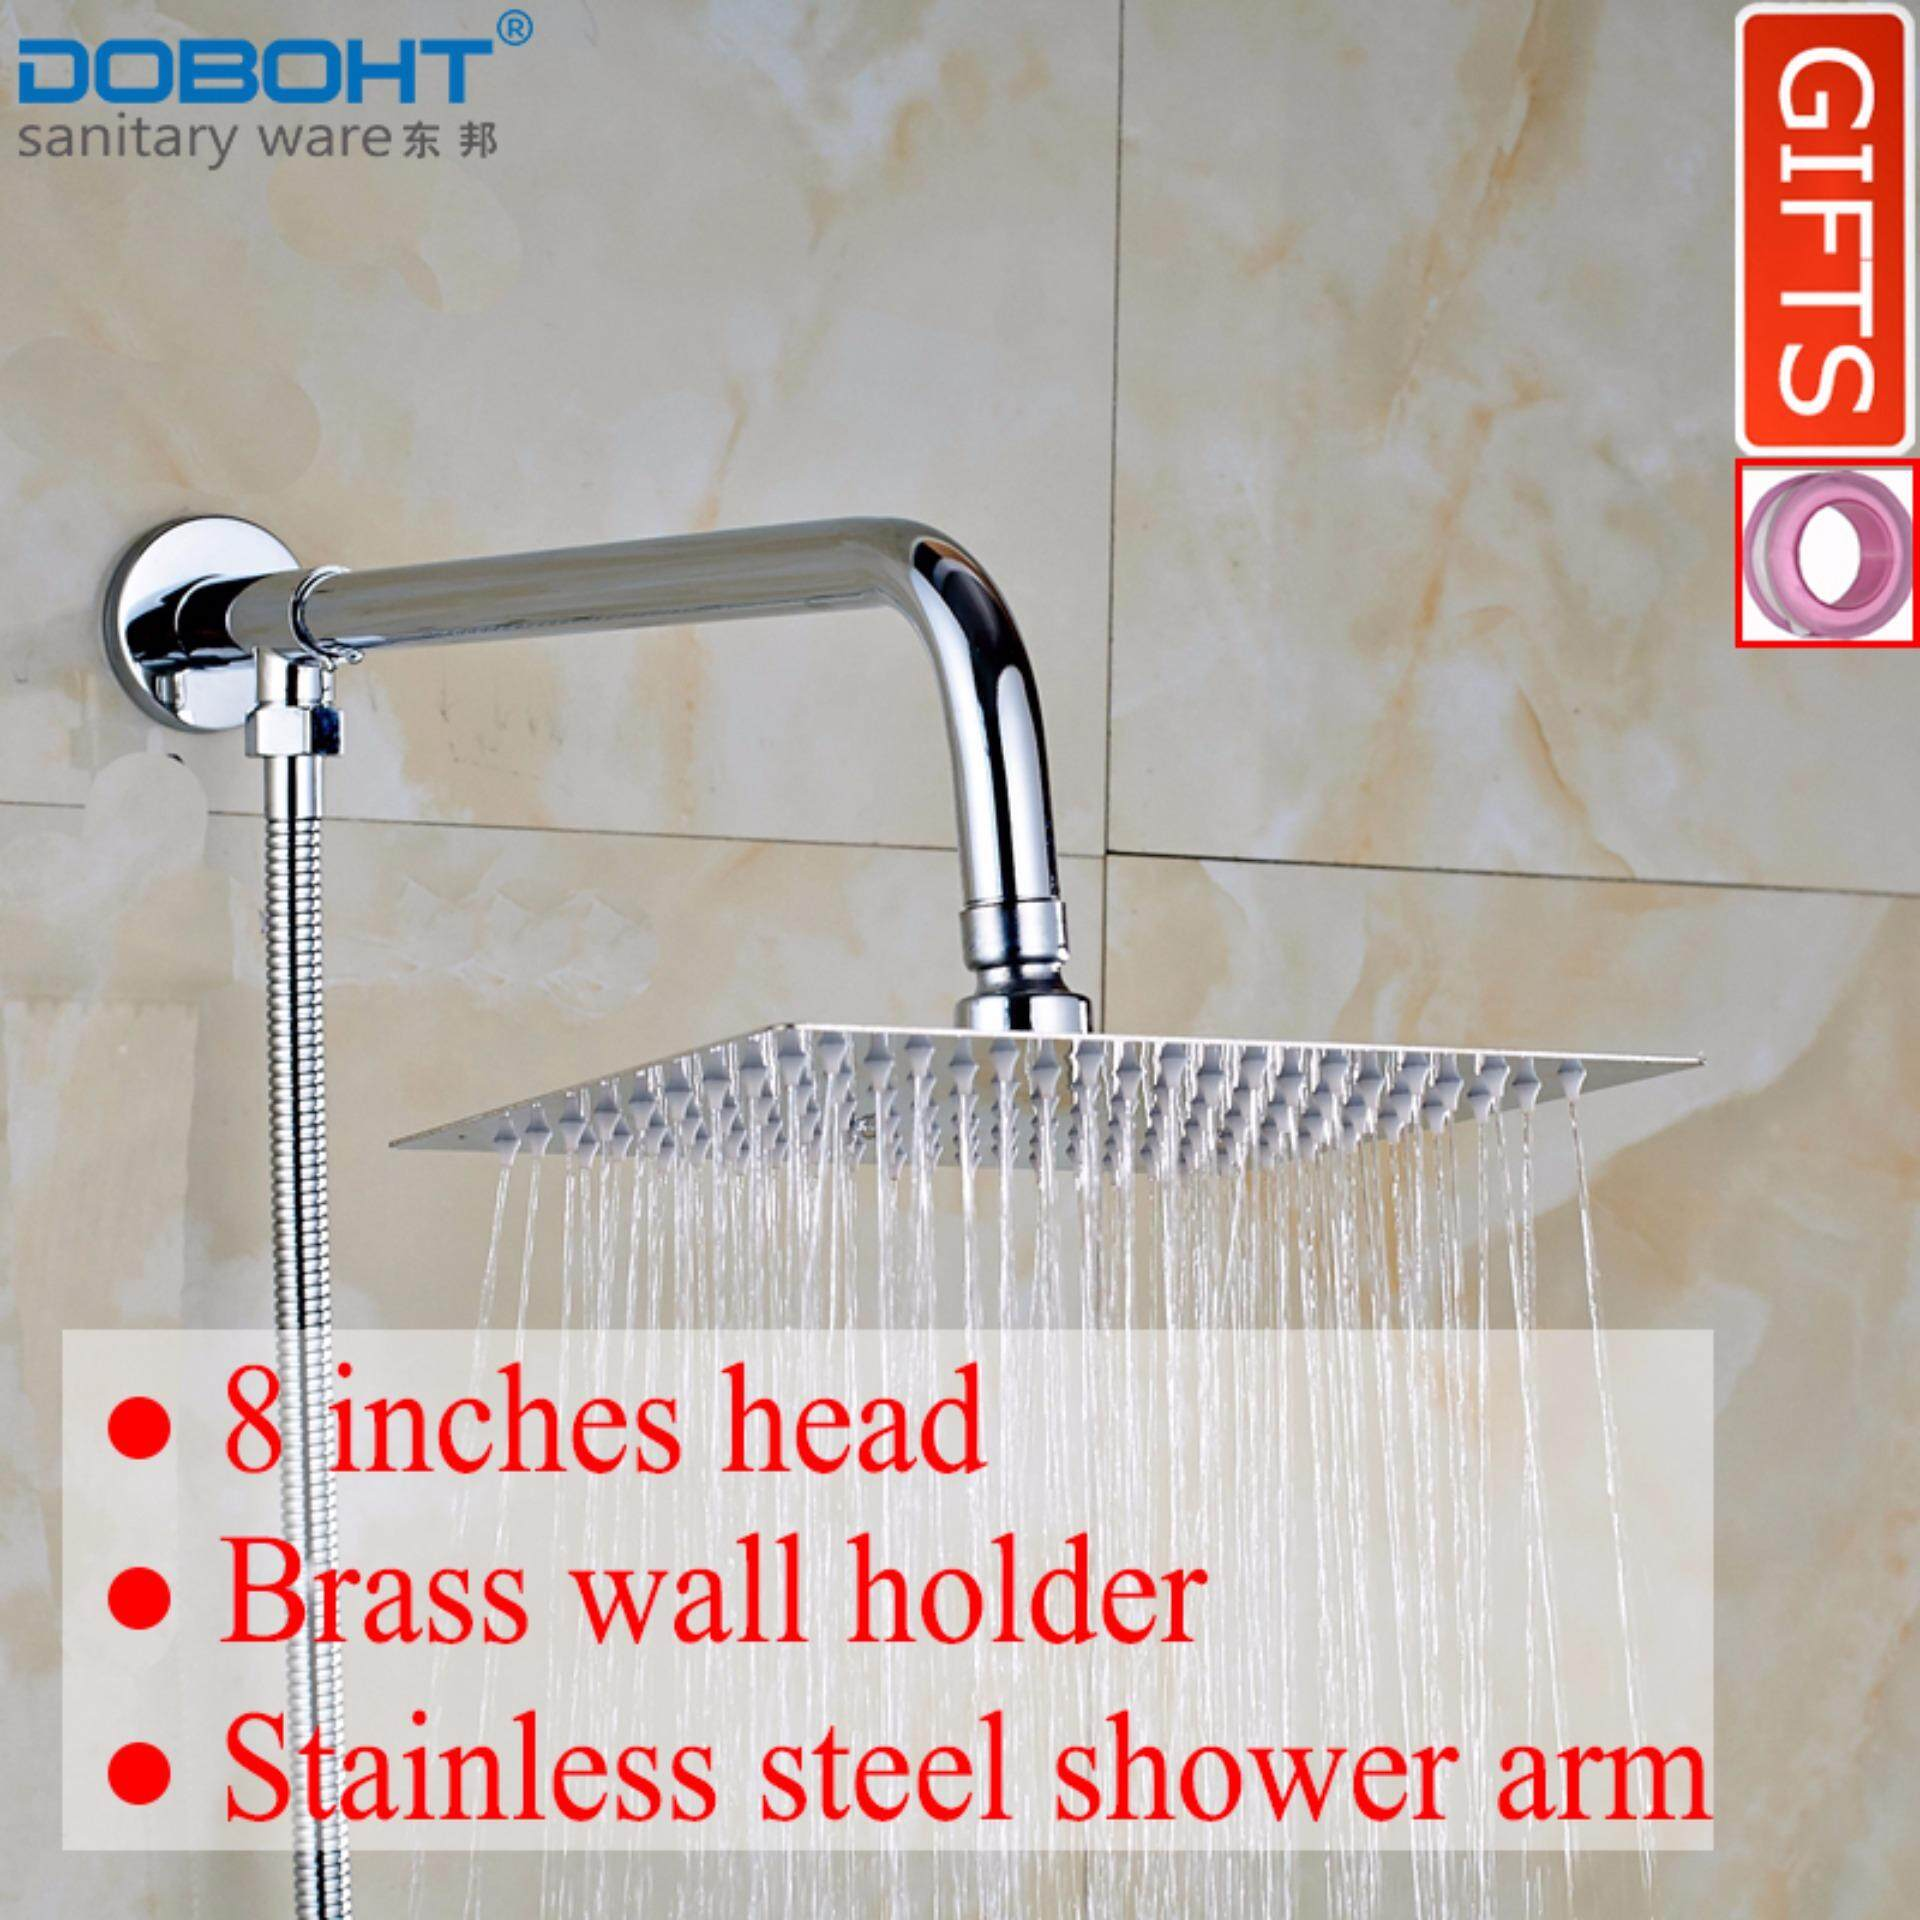 โปรโมชั่น Doboht Bathroom Home Shower Set With 8 Inch Stainless Steel Shower Head And Shower Arms And 1 5M Hose Chrome Intl Doboht